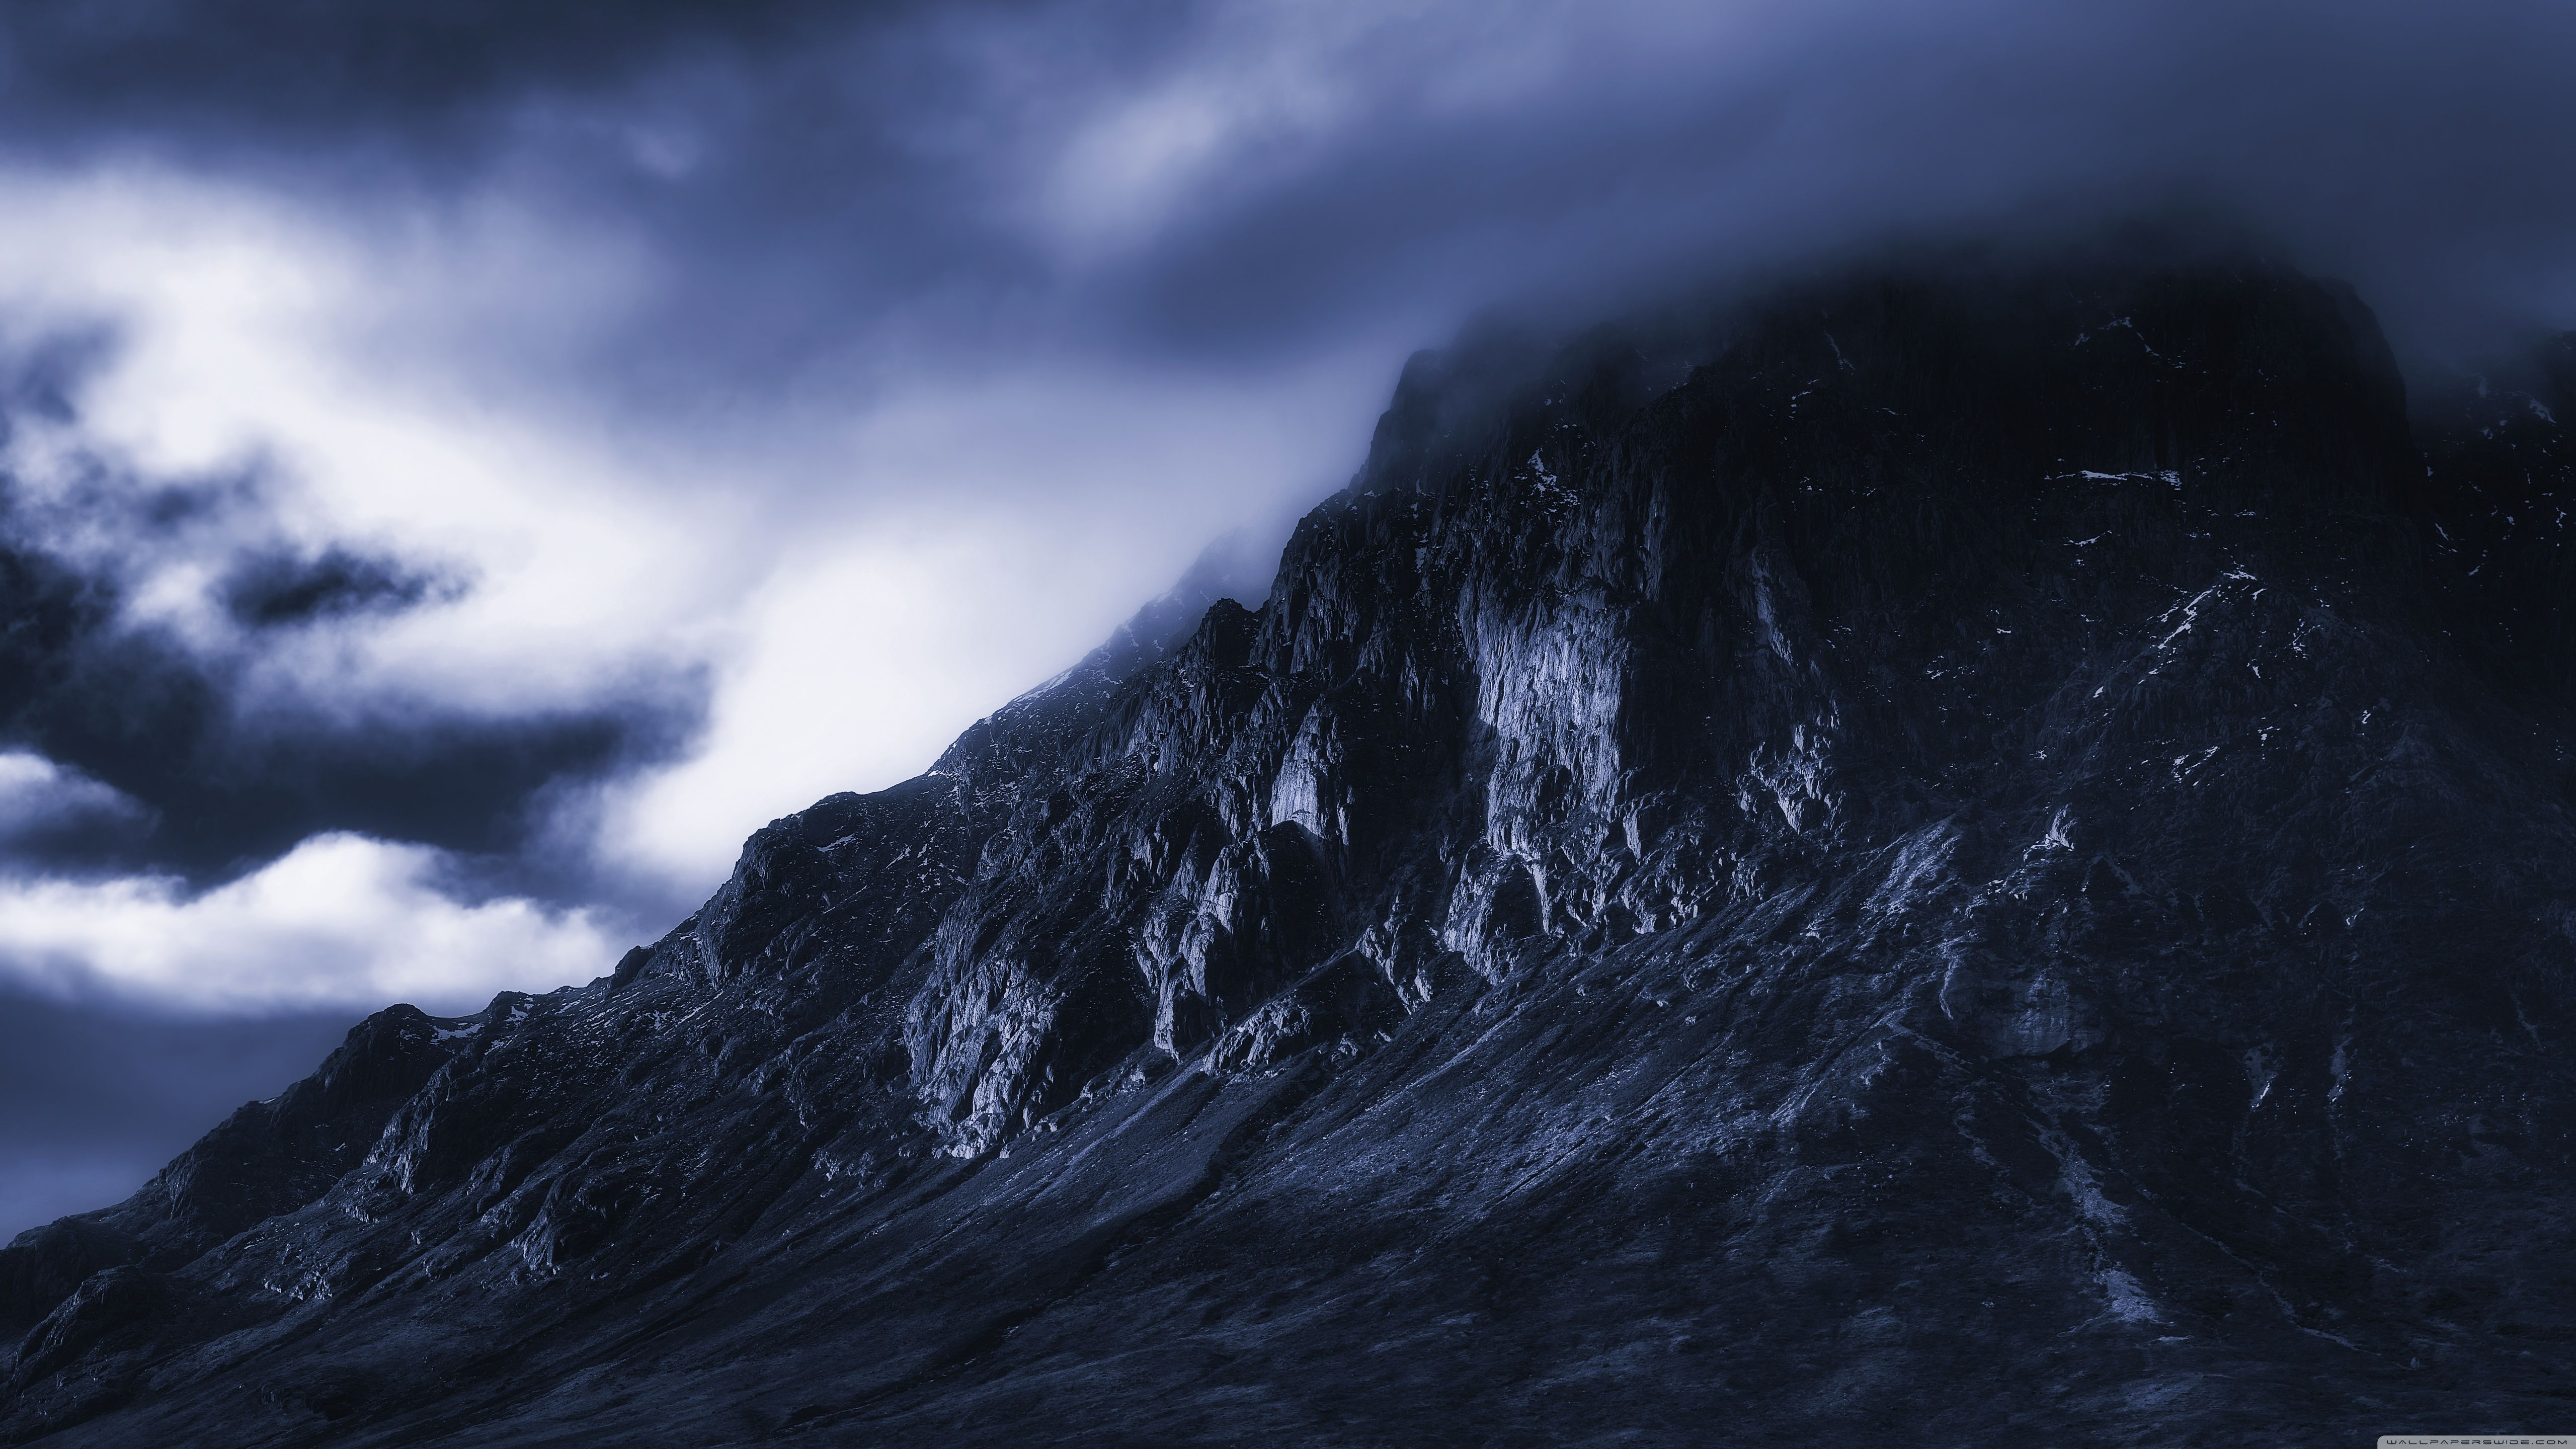 Black Mountain Wallpapers Top Free Black Mountain Backgrounds